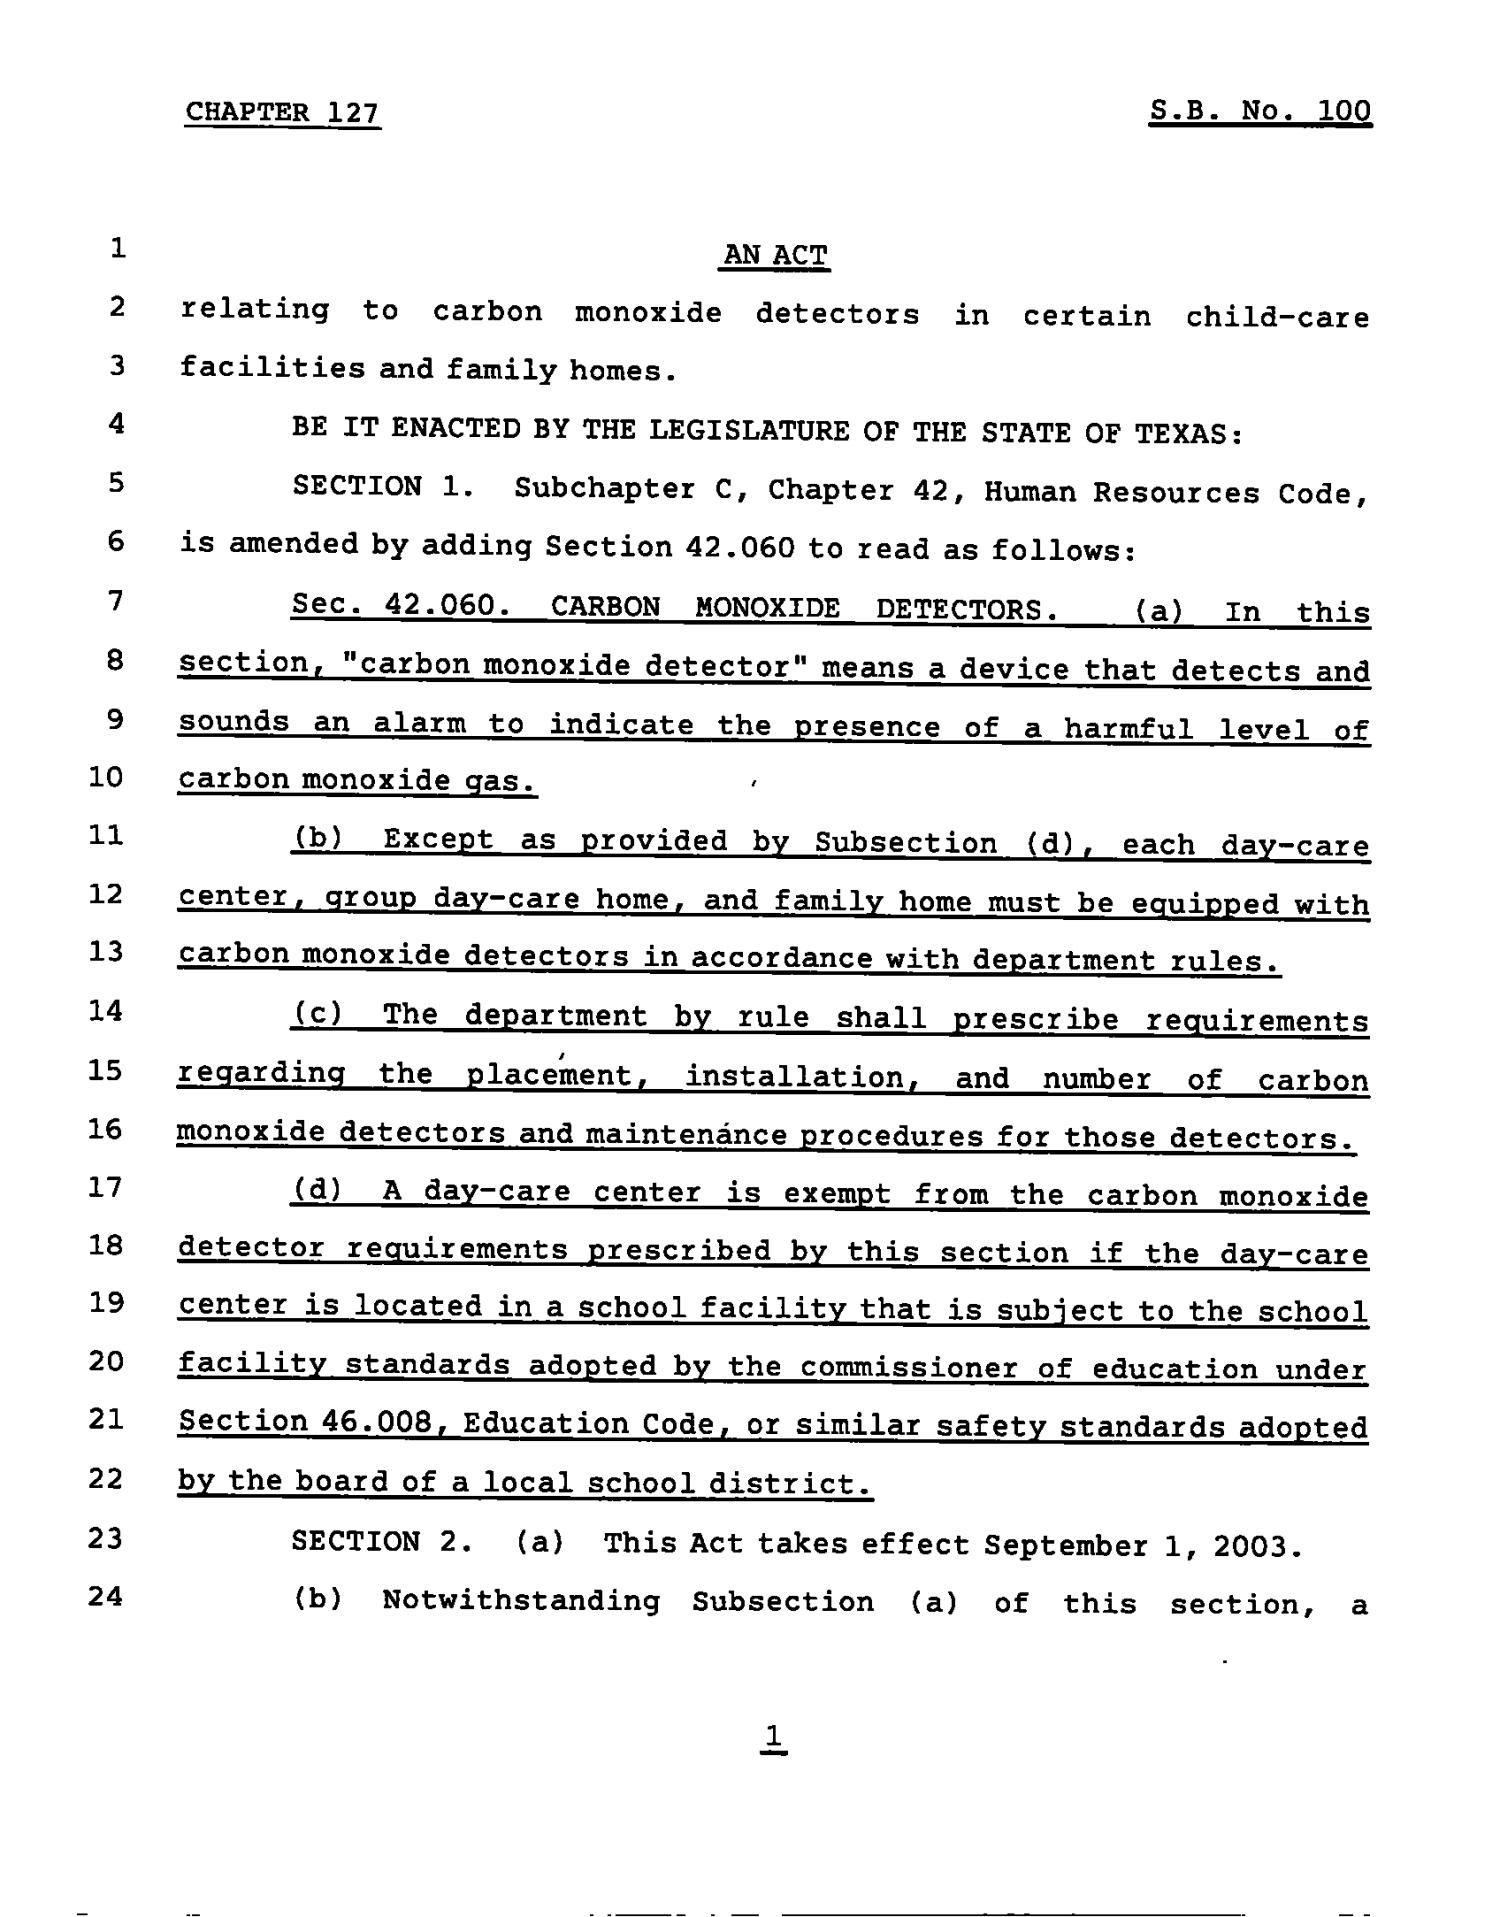 78th Texas Legislature, Regular Session,Senate Bill 100, Chapter 127                                                                                                      [Sequence #]: 1 of 3